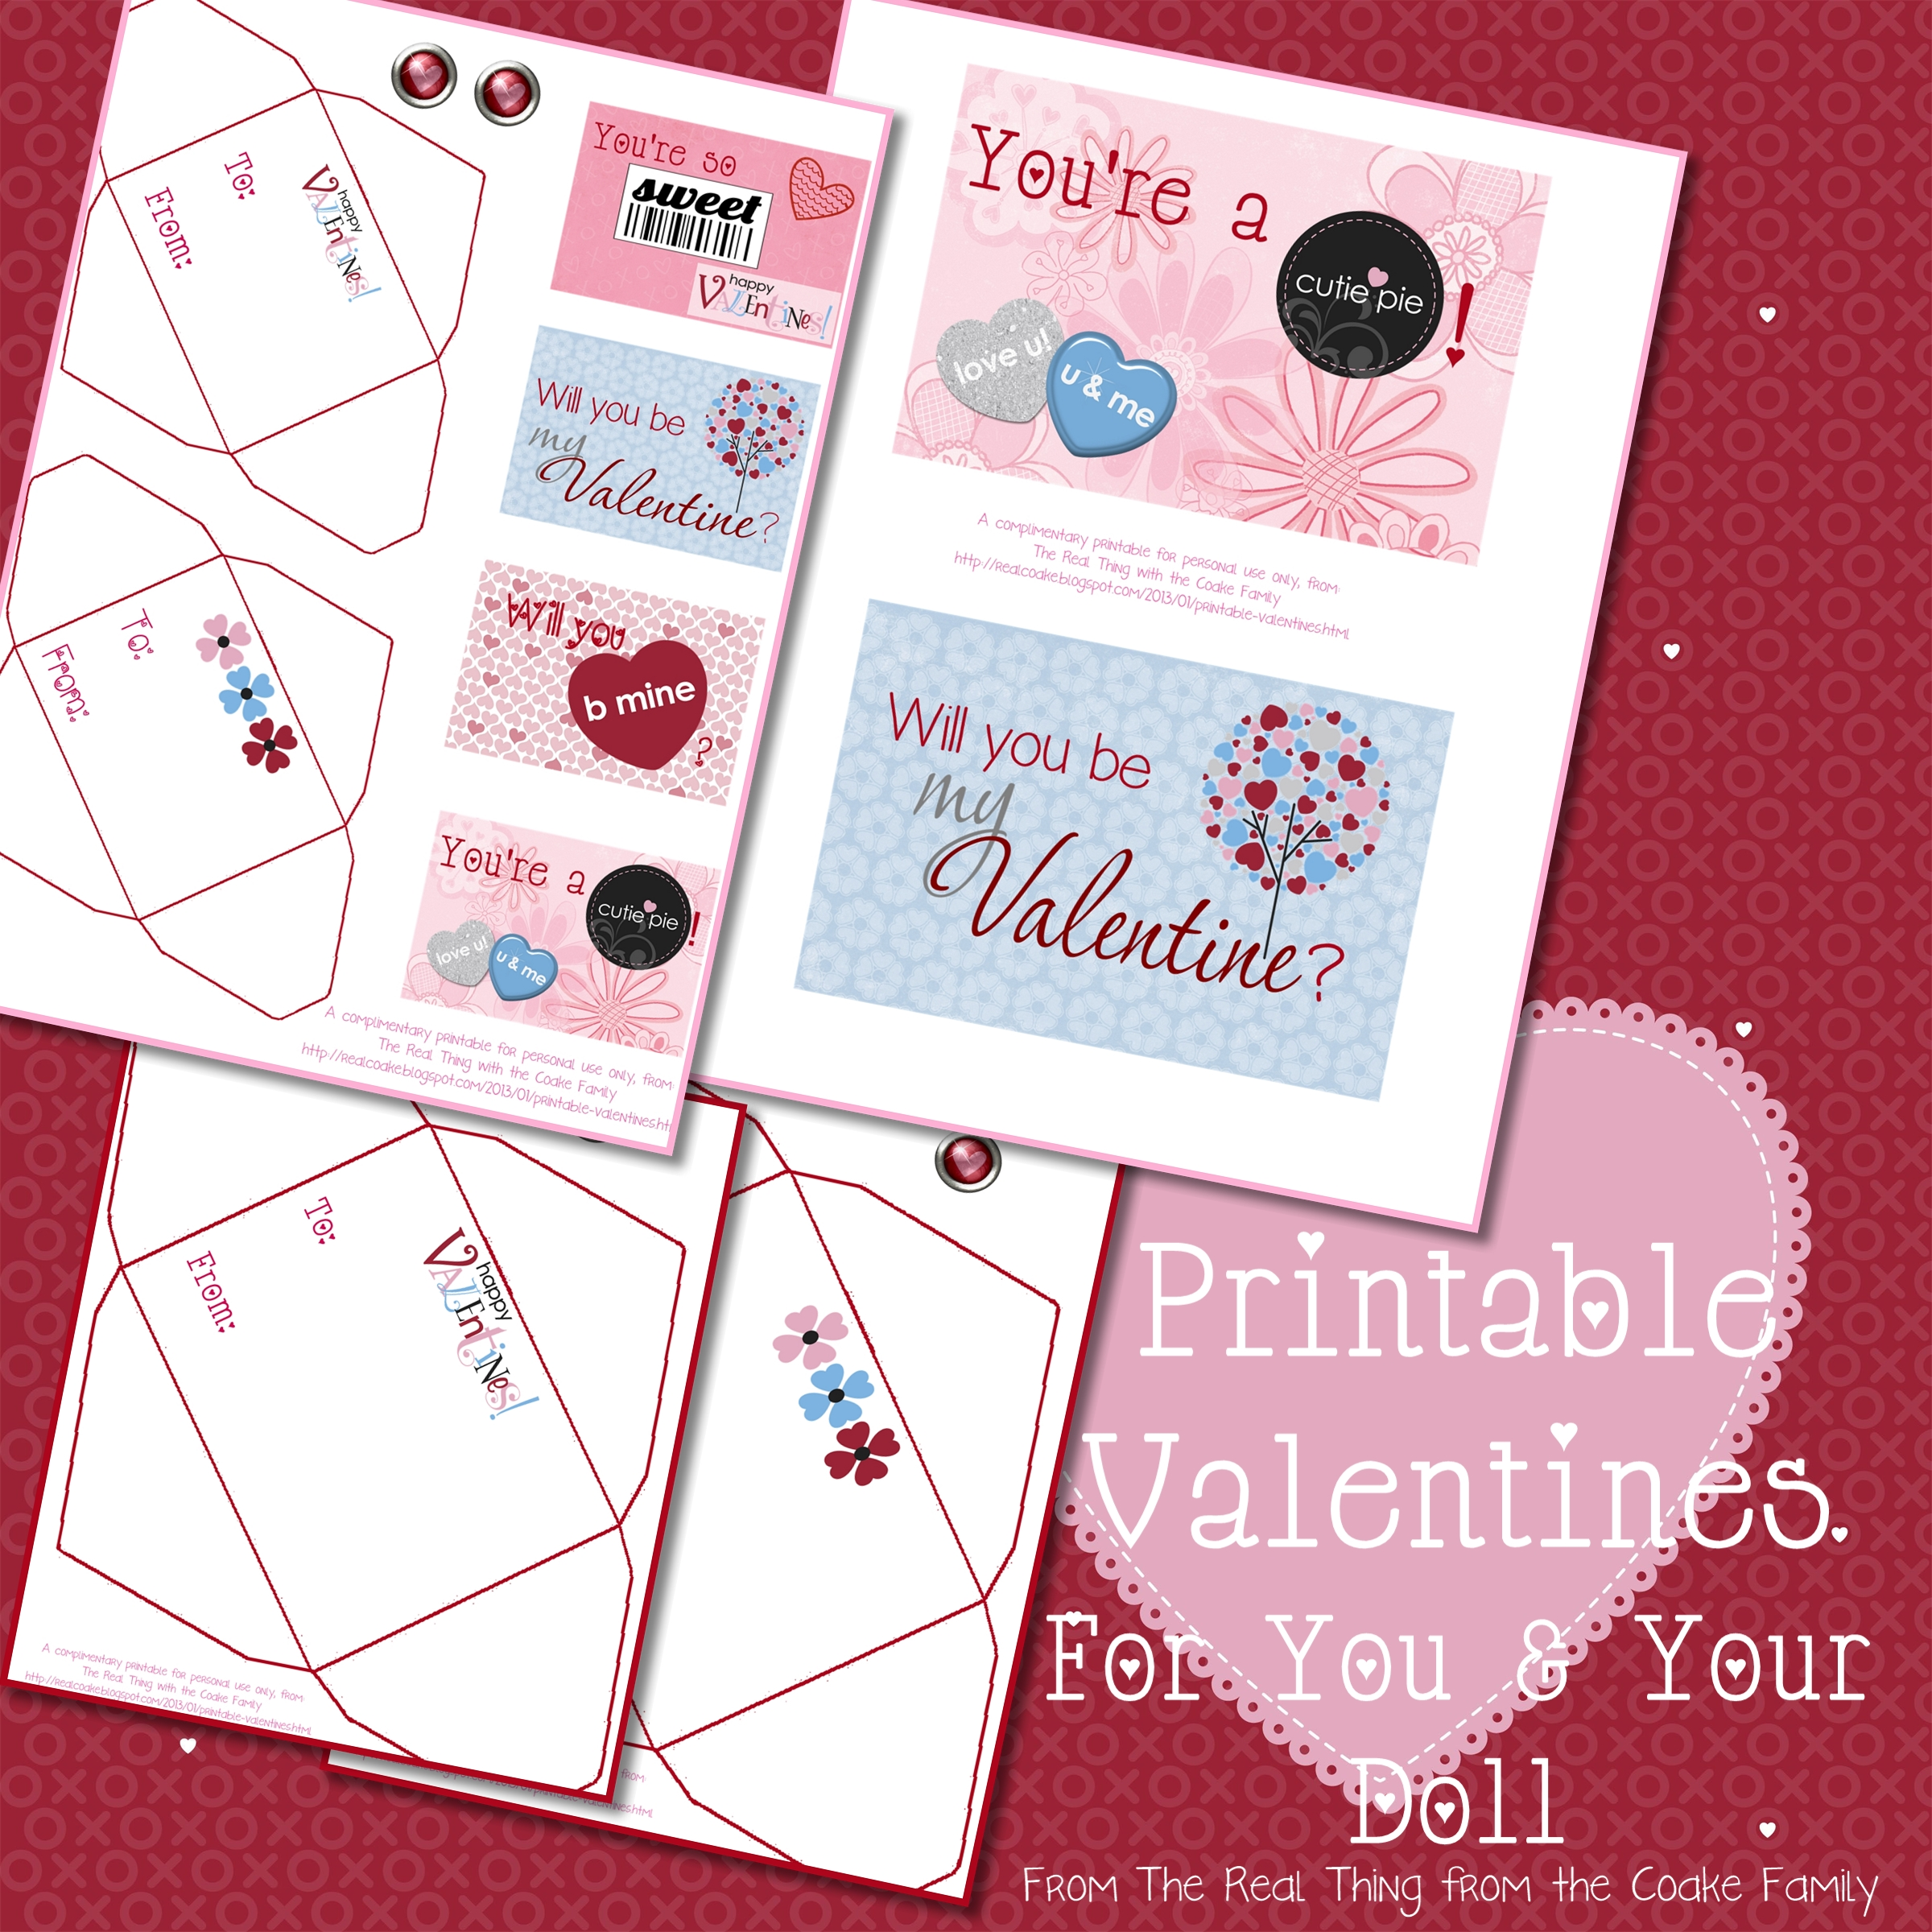 Valentine's Day Mega Fun with over 30 great Valentine's Day Ideas!! #Valentines #Crafts #Recipe #Printable